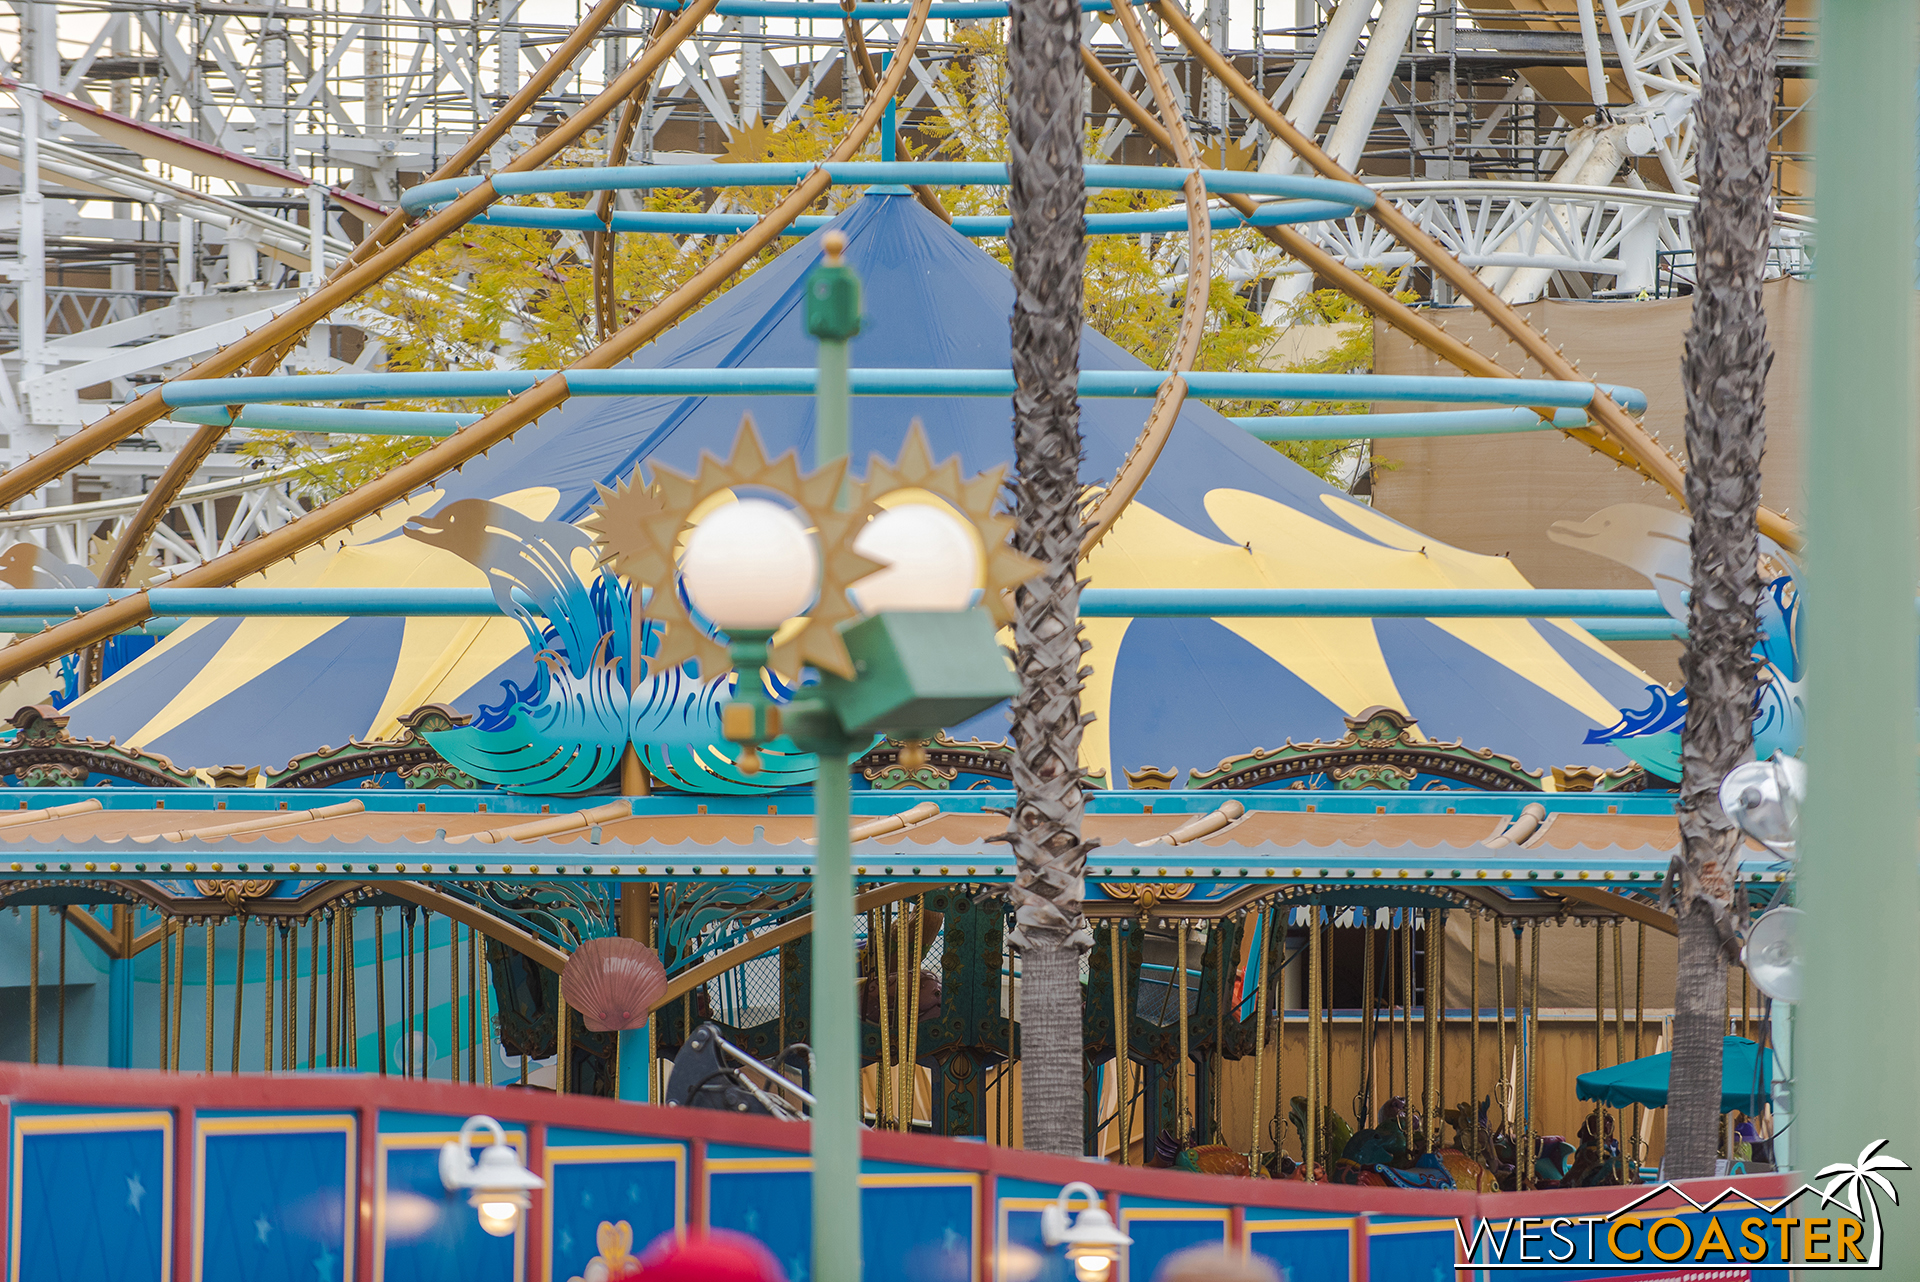 The carousel animals are still from Triton's ocean variety.